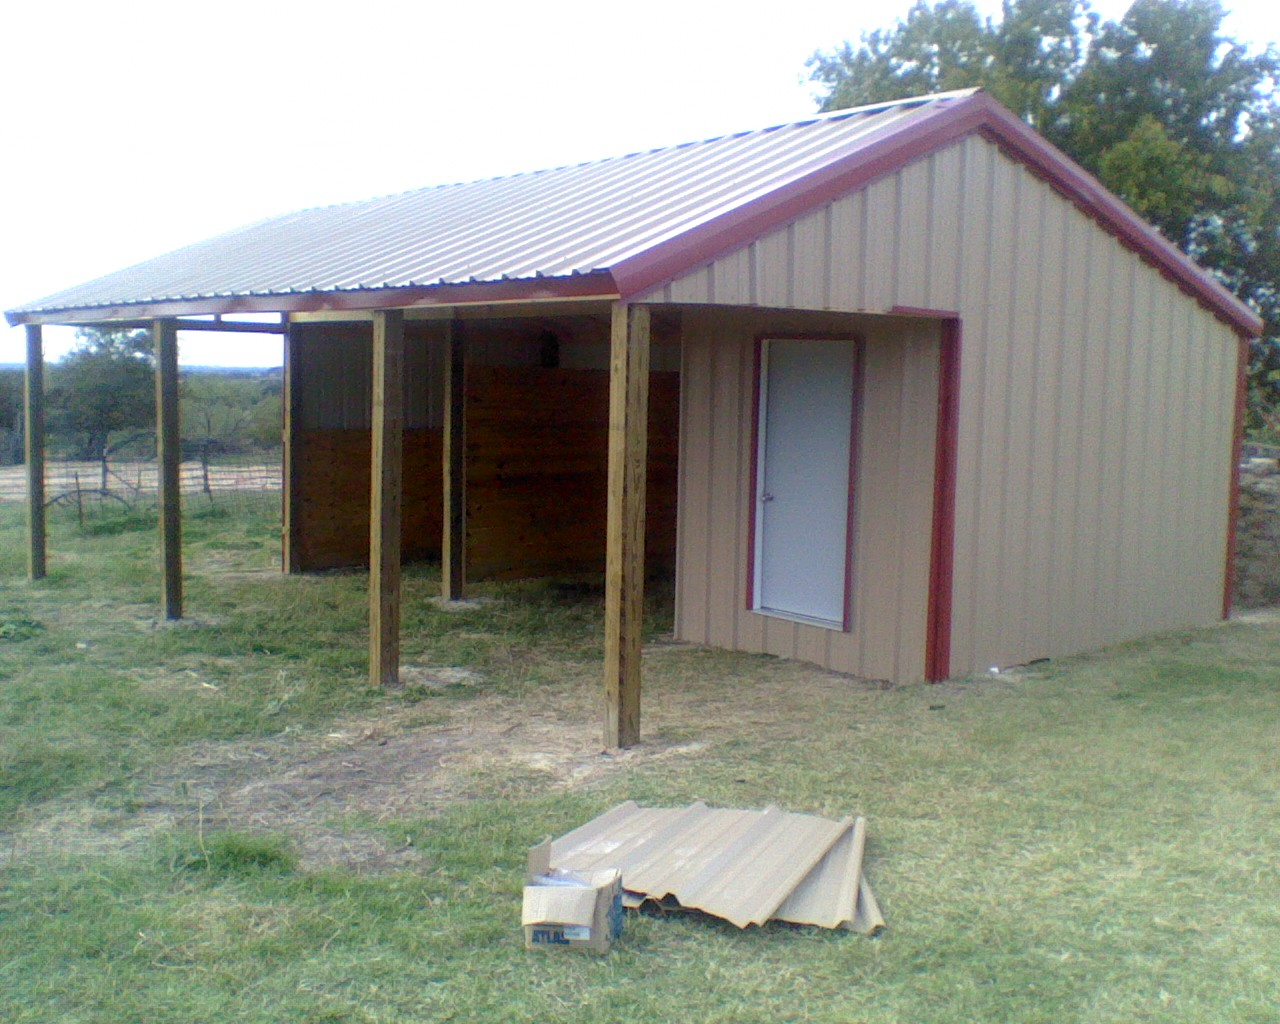 How to build a metal loafing shed shed plan easy for 2 stall horse barn kits